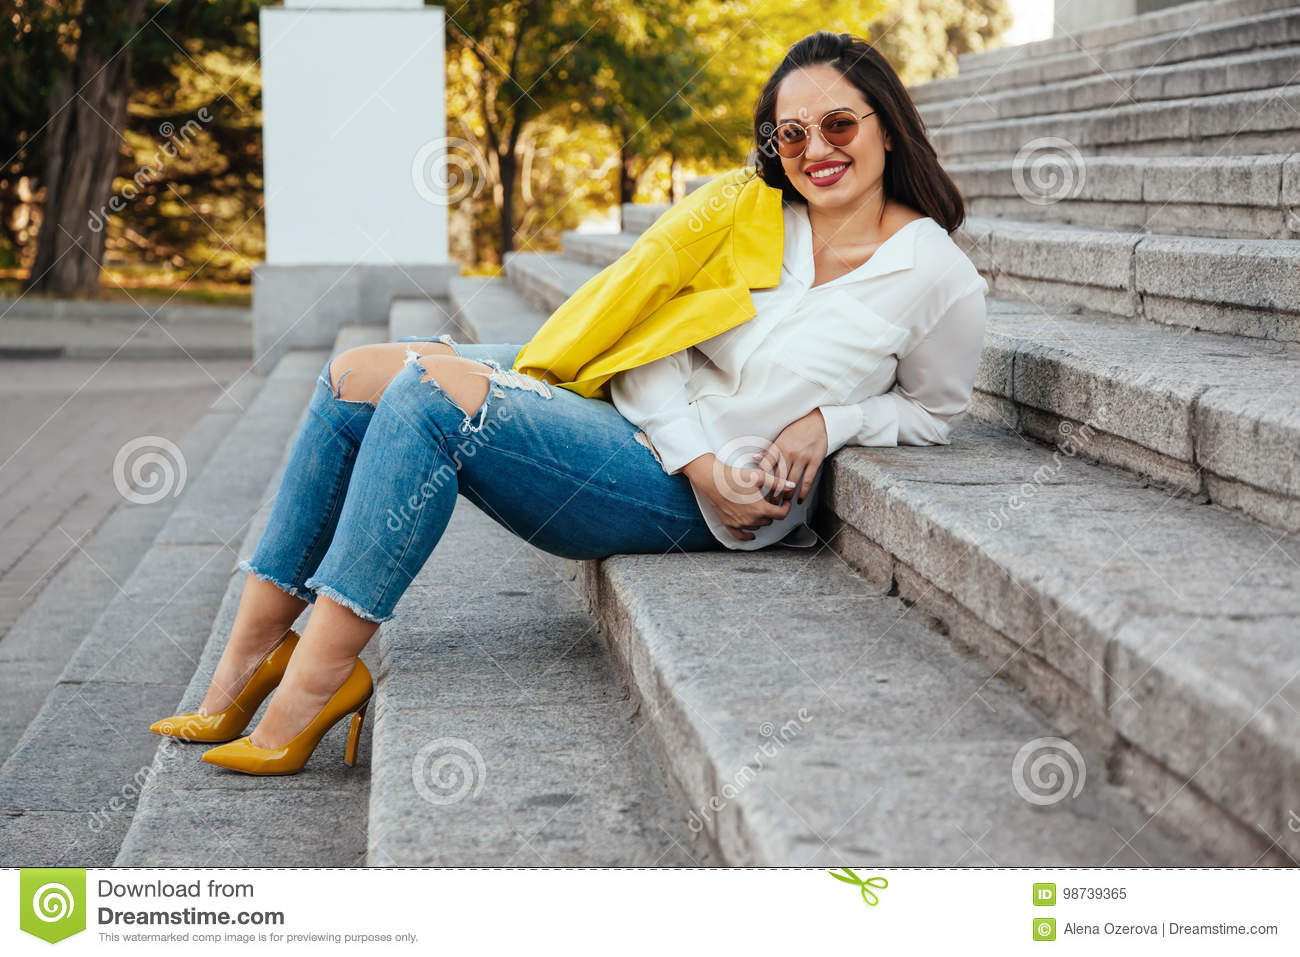 123106e060f Prerry young woman wearing bright colorful jacket, ripped jeans and heel  shoes walking on the city street. Casual fashion, plus size model.